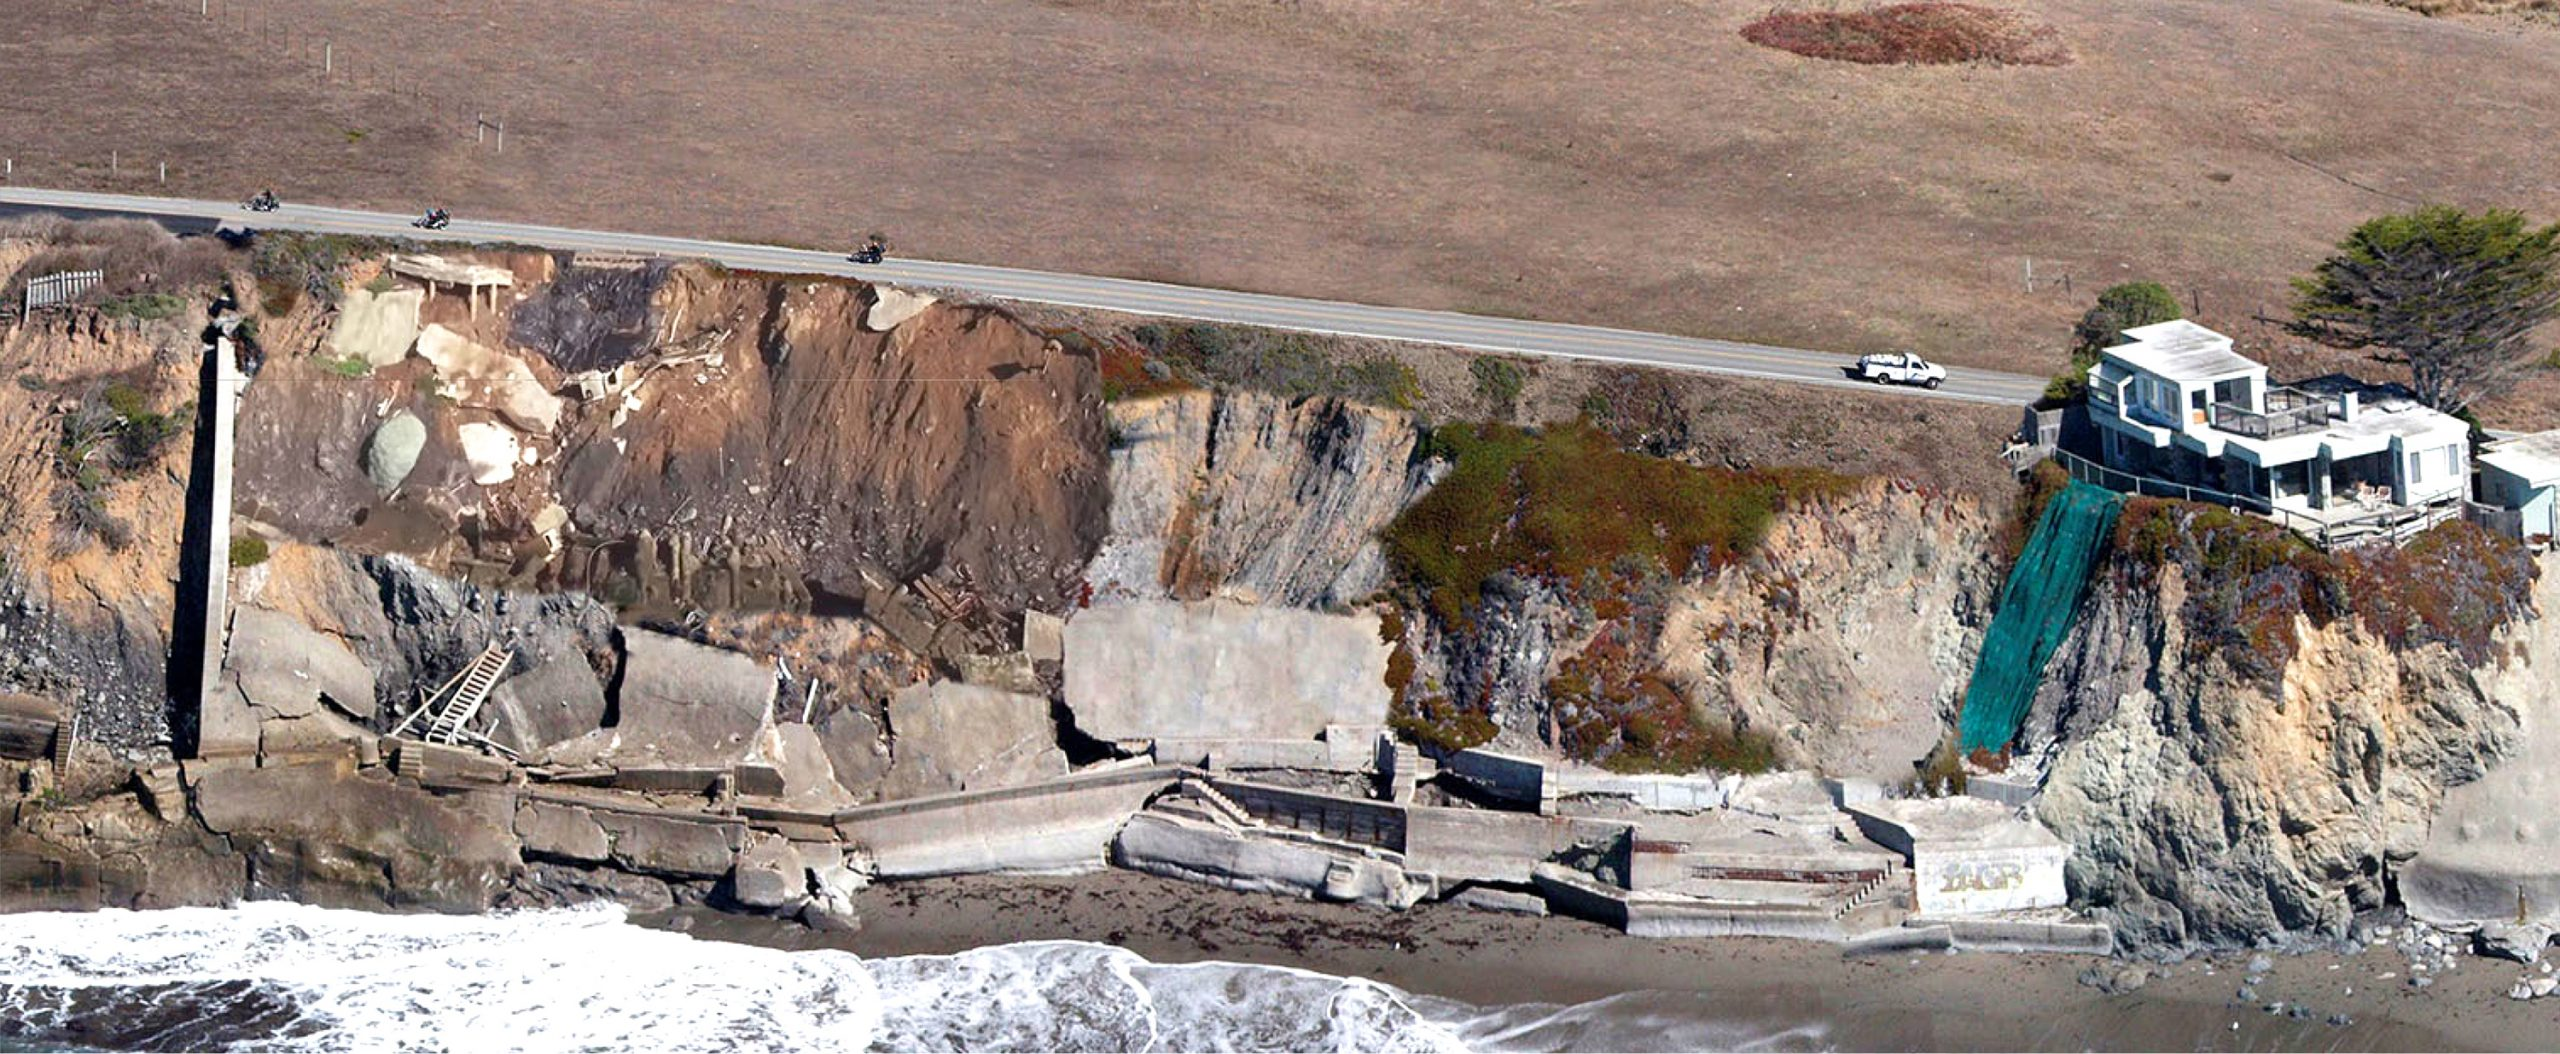 Photo of coastal erosion having destroyed several houses and encroaching on SR1.